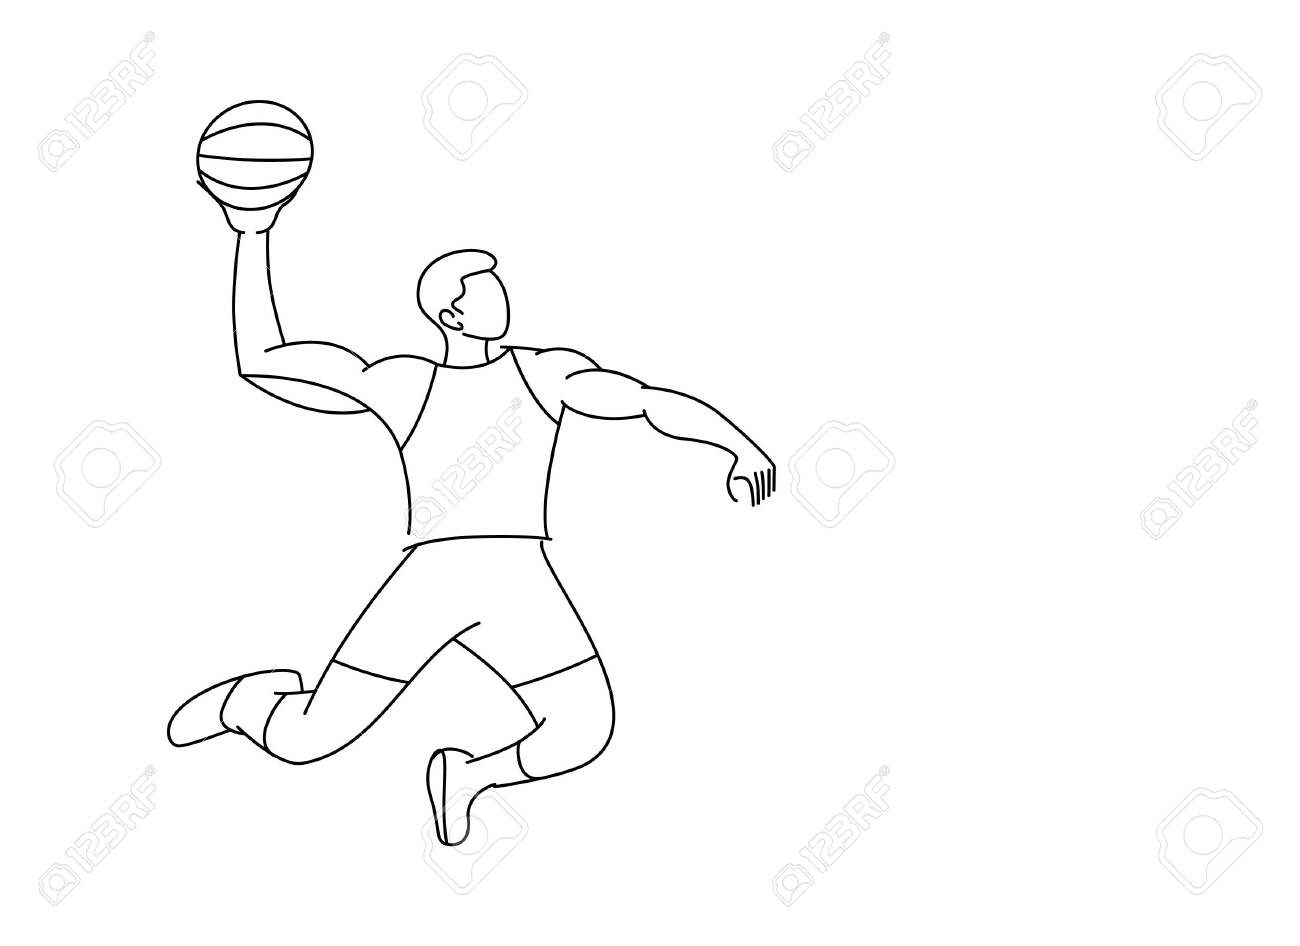 Basketball Player Jumping Dunking In Line Art Drawing Vector Royalty Free Cliparts Vectors And Stock Illustration Image 121185621